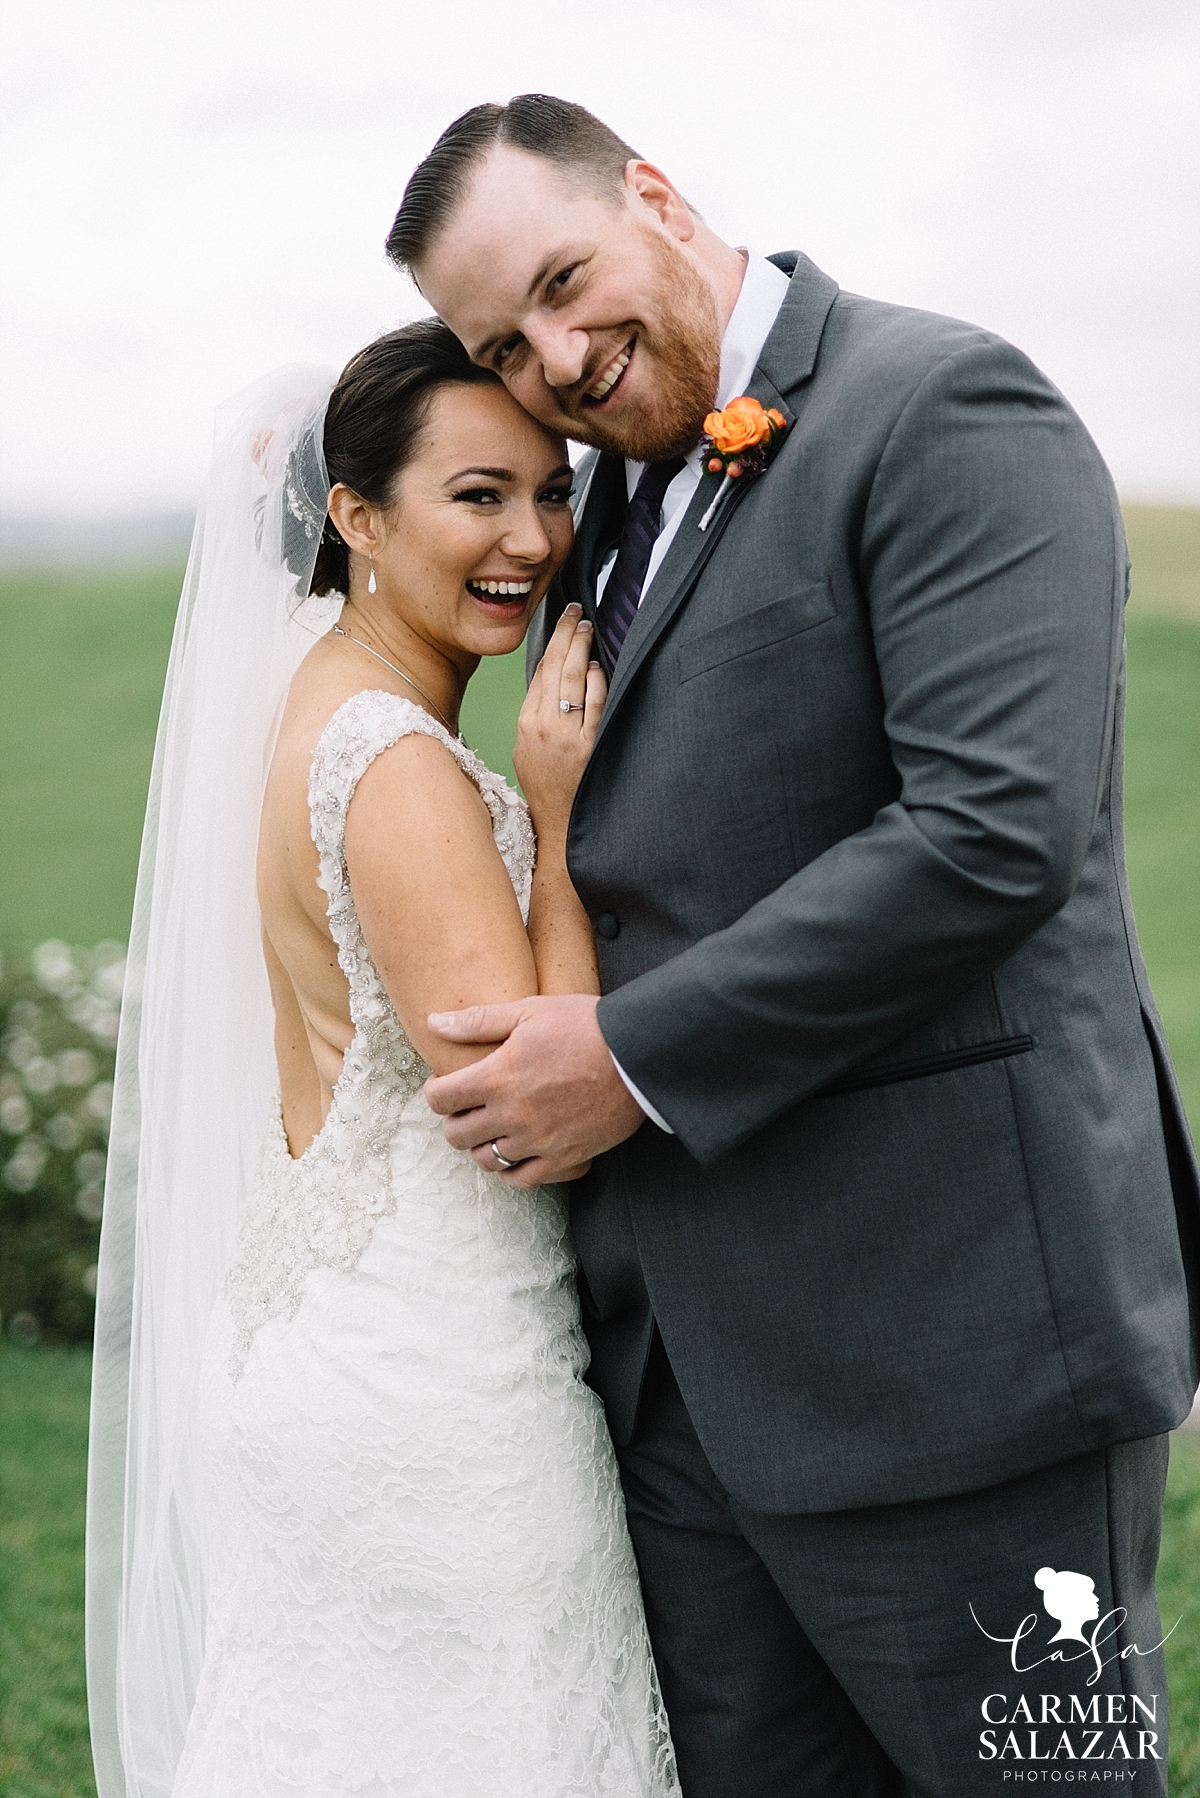 Happy newlyweds at Taber Ranch - Carmen Salazar